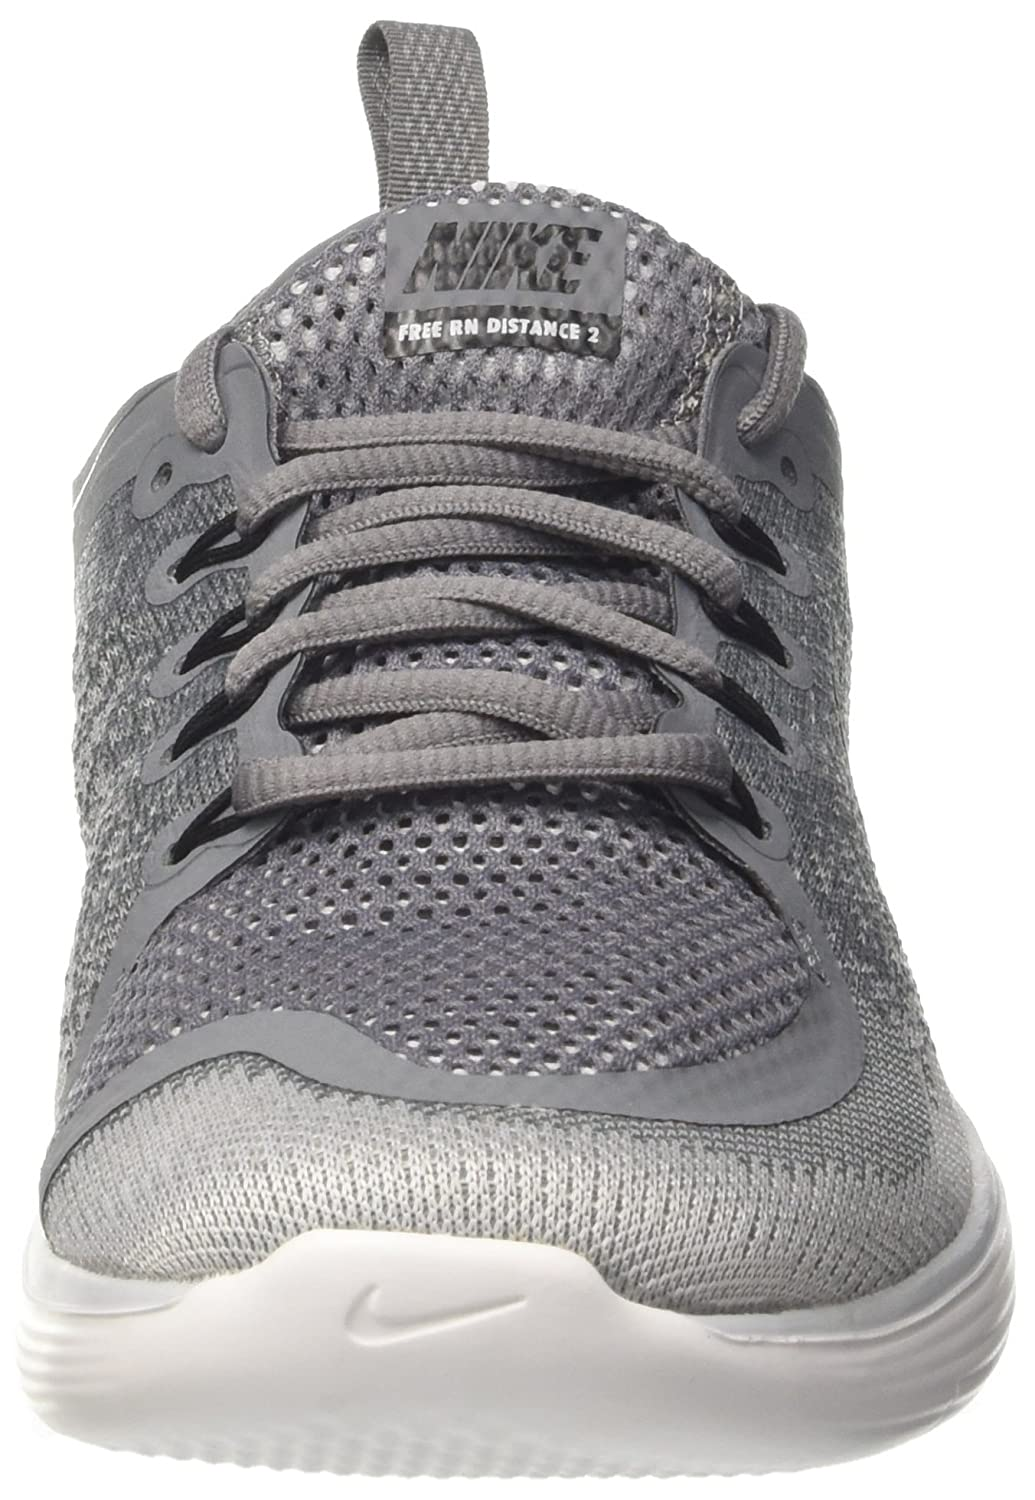 huge selection of f1611 117e5 Amazon.com   Nike Mens Free RN Distance 2 Running Shoes   Running